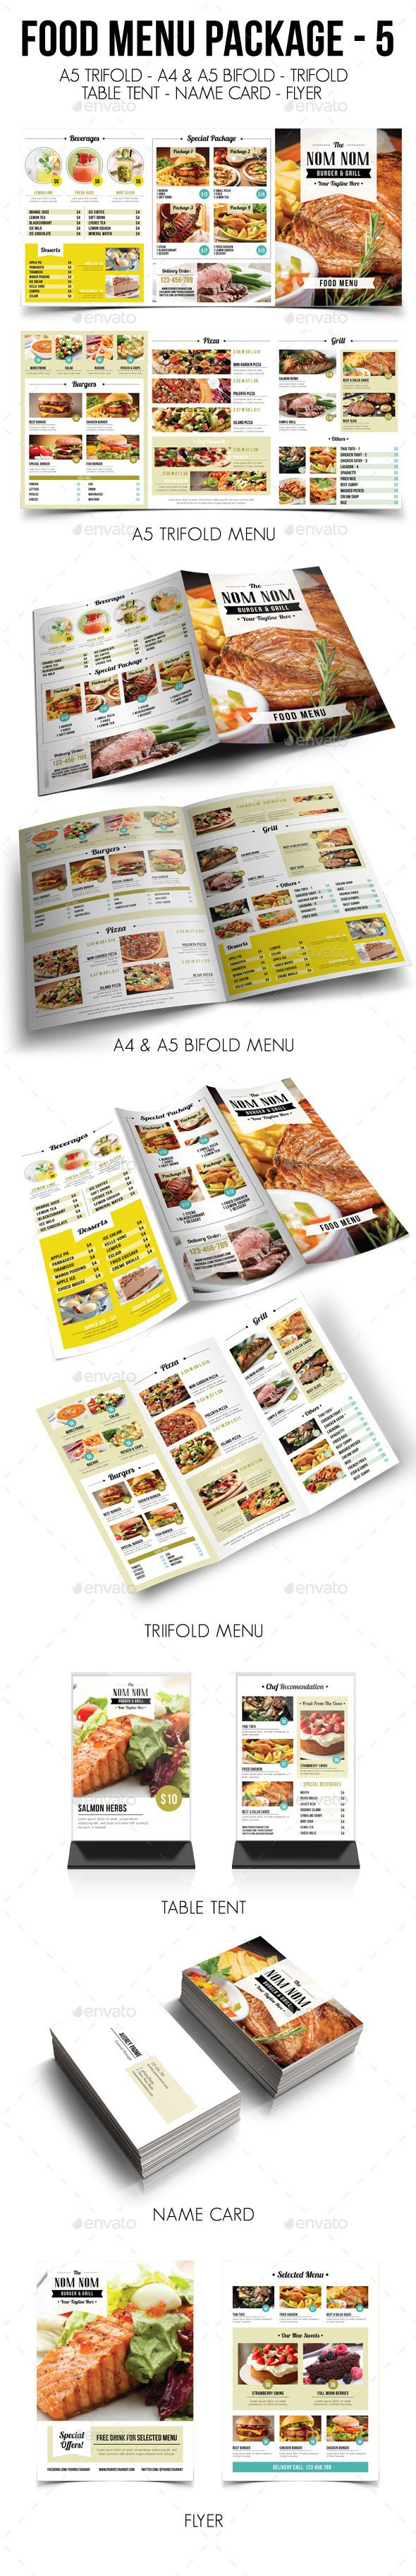 Food Menu Package Template #design Download: http://graphicriver.net/item/food-menu-package-5/13009301?ref=ksioks